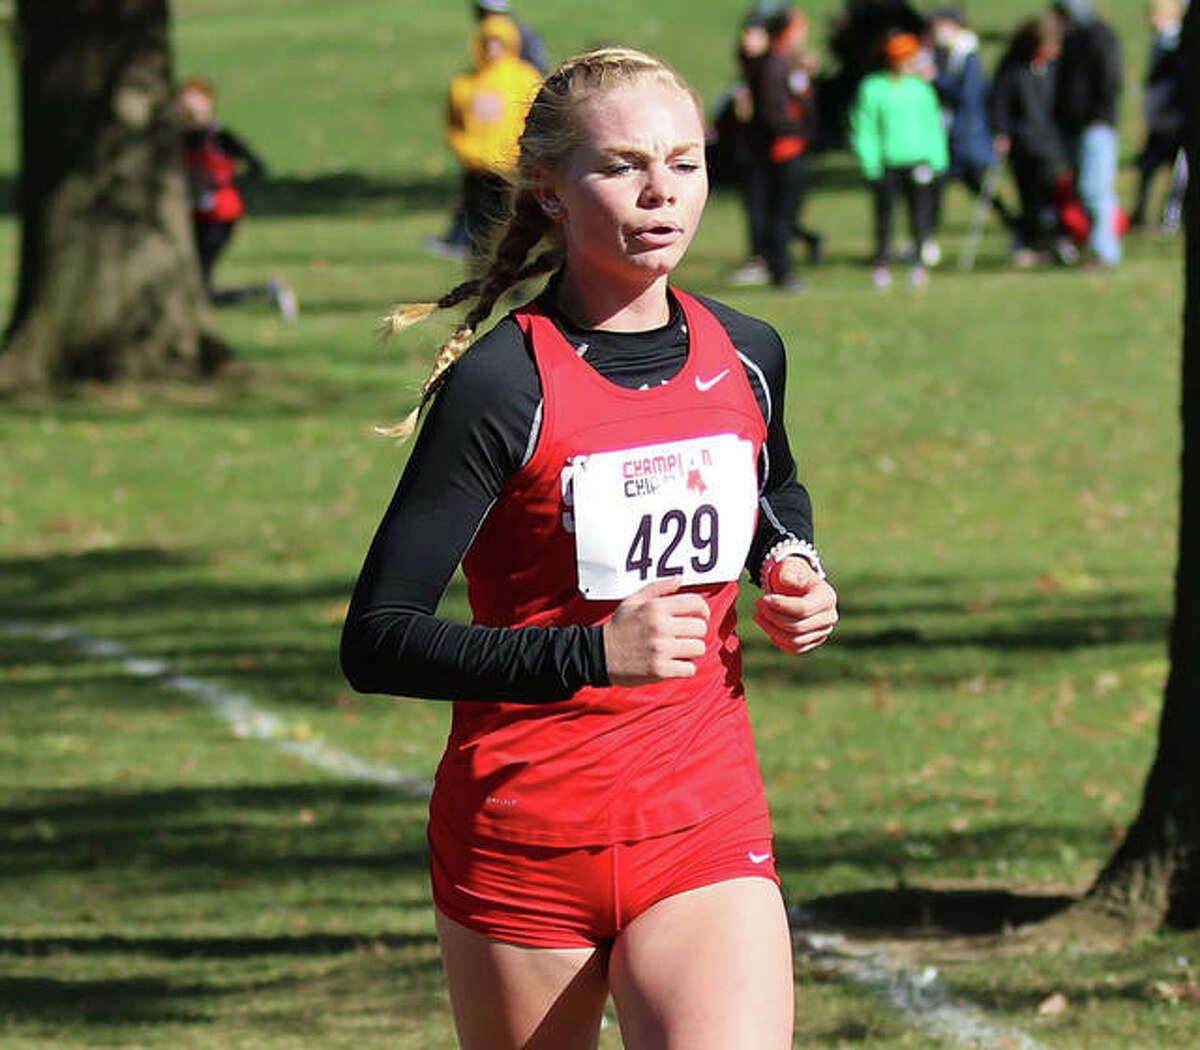 Staunton senior Dana Jarden, shown running in the Decatur St. Teresa Class 1A Sectional in Forsyth, as among the high school cross country runners honored among 2020's best by the Alton Road Runners Club.